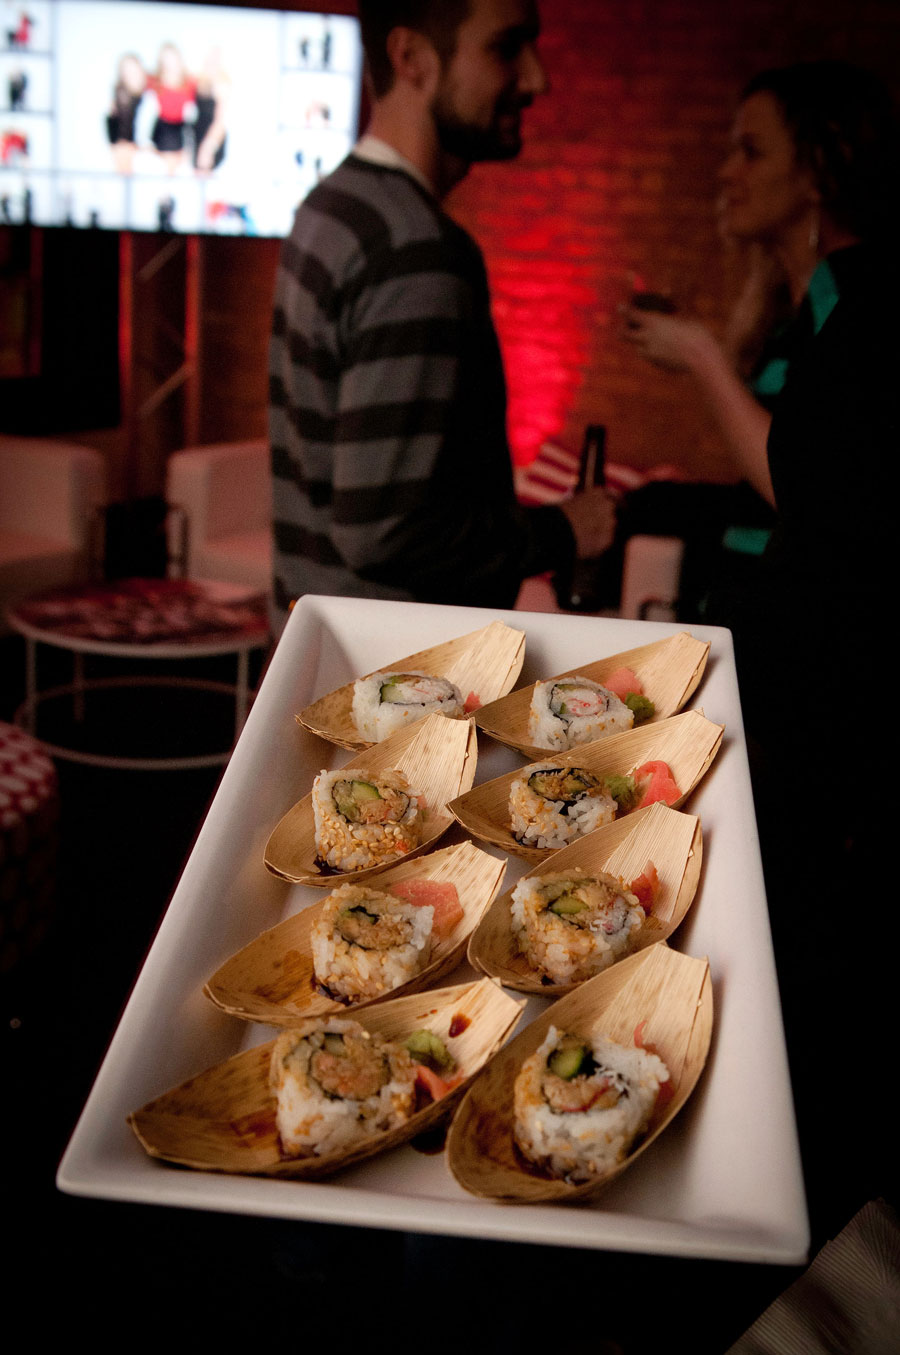 lola_red_peace_love_party_appetizers.jpg